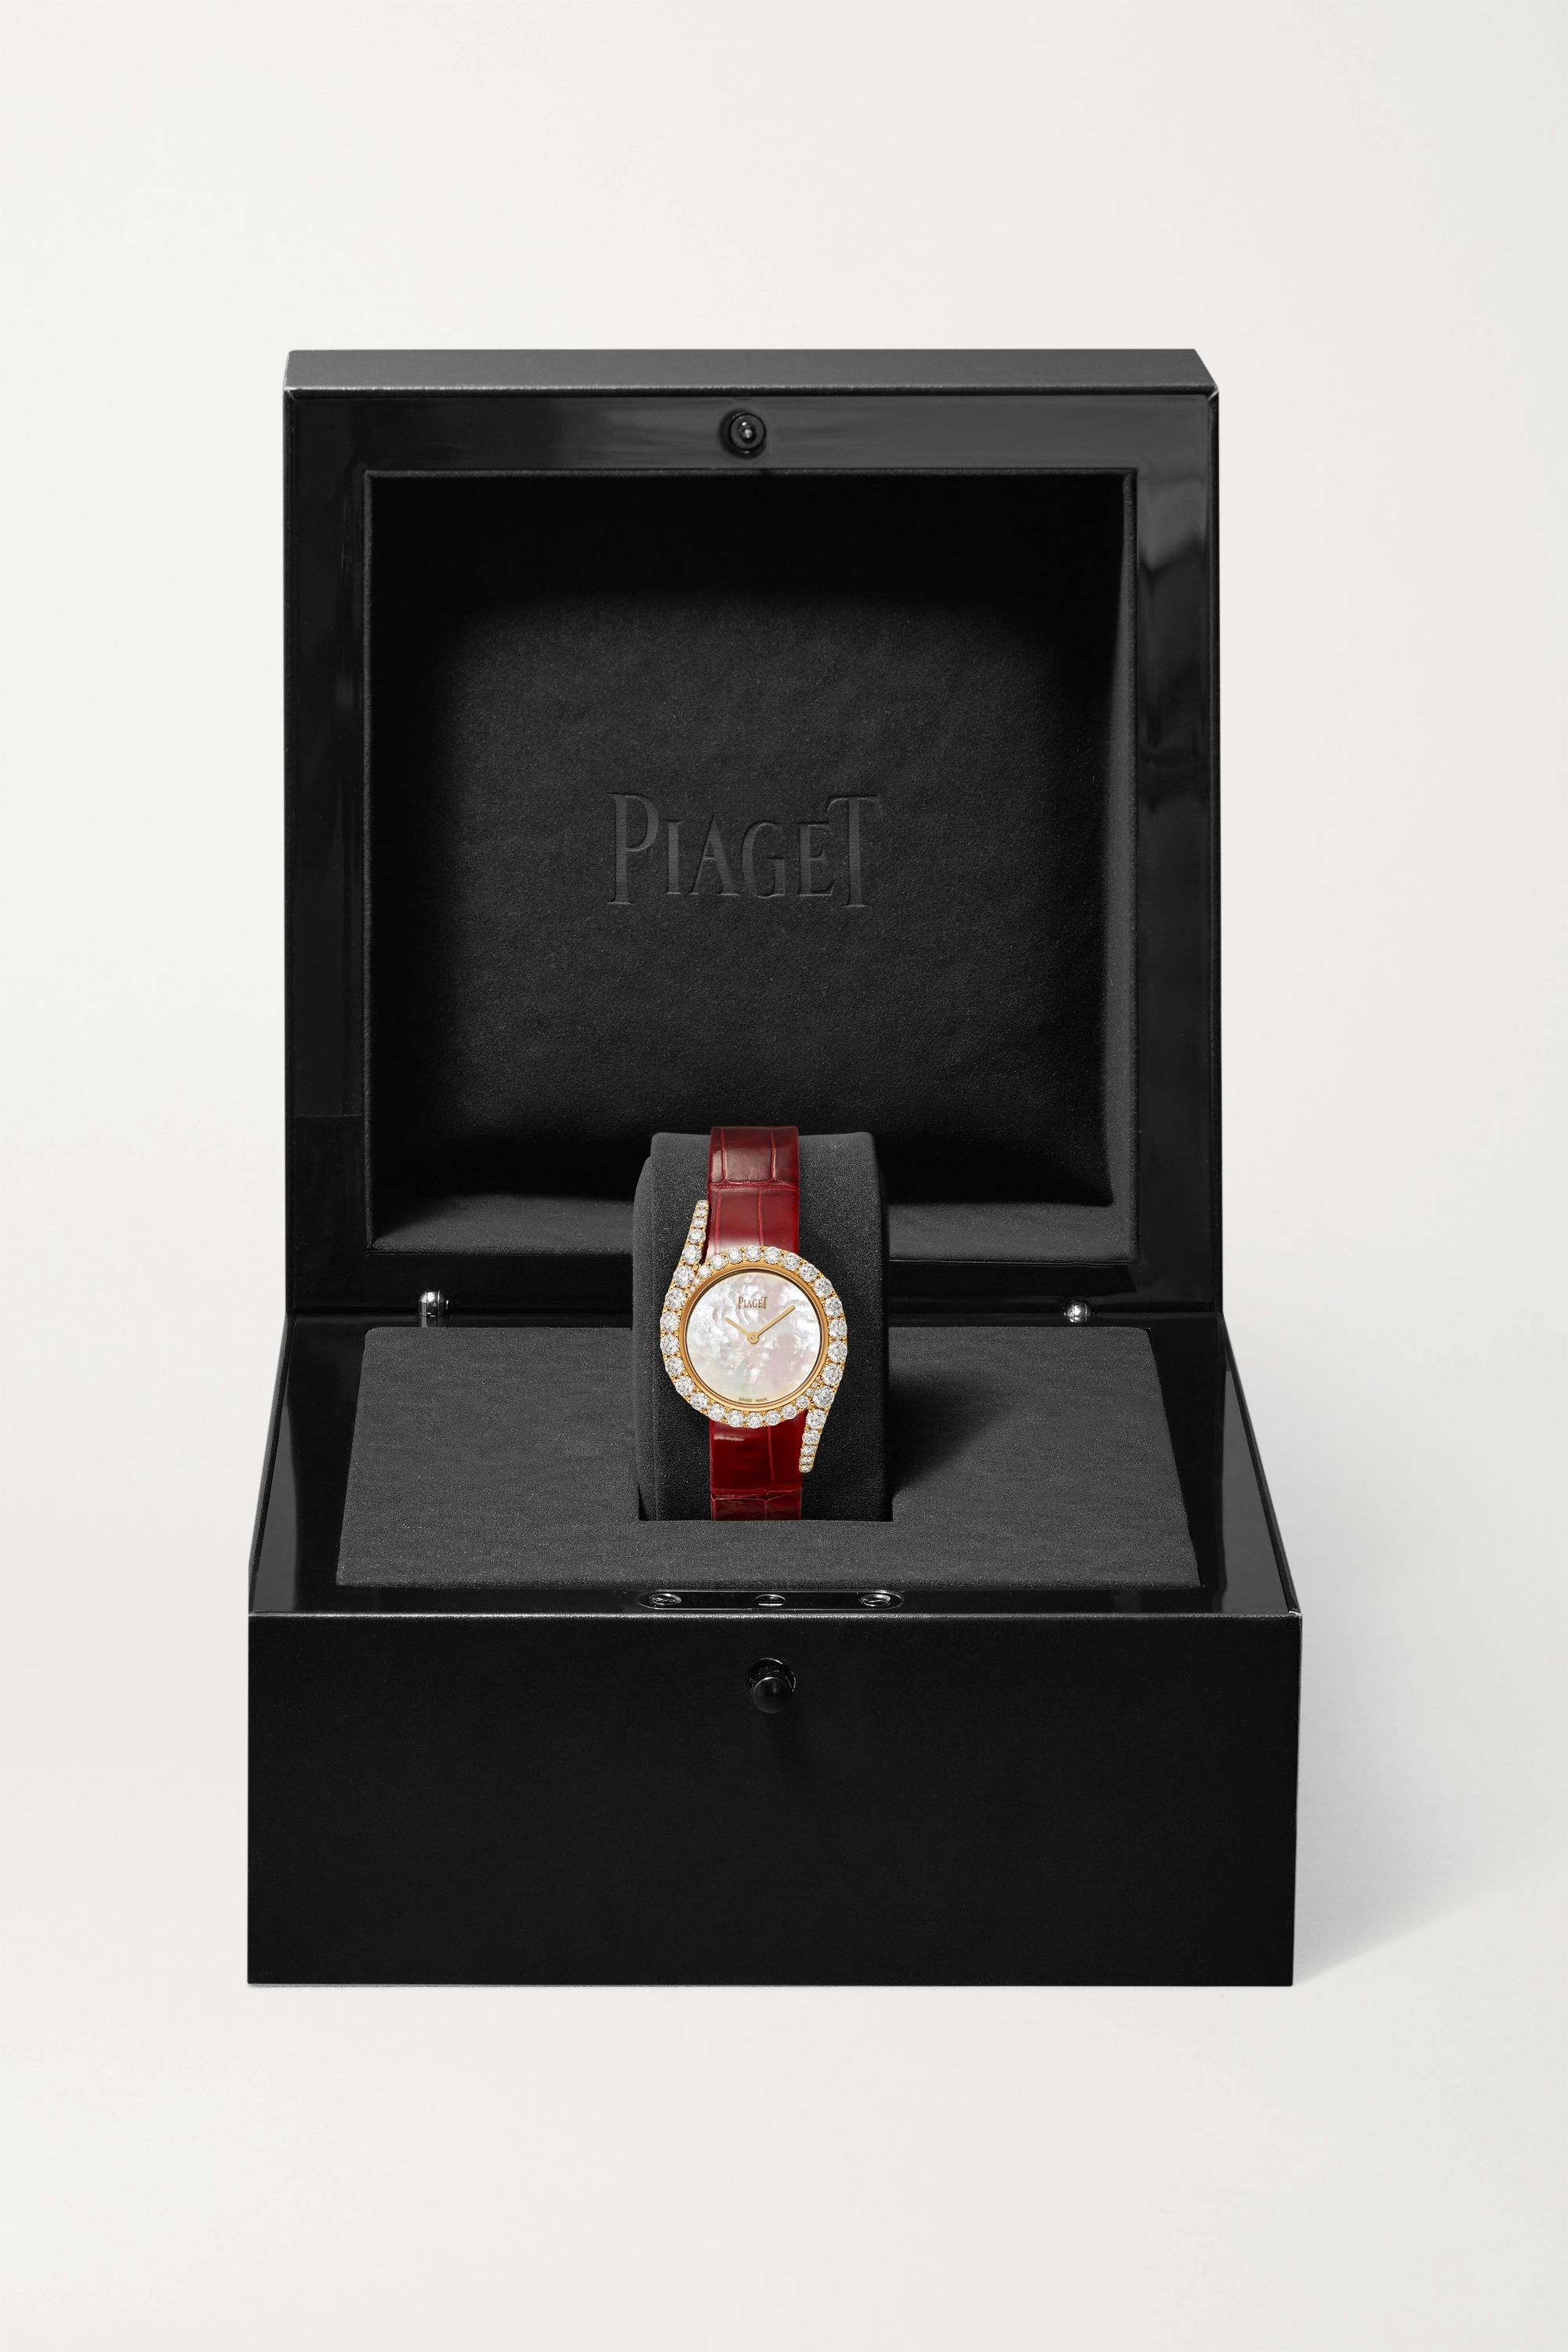 Piaget Limelight Gala 32mm 18-karat rose gold, alligator and diamond watch